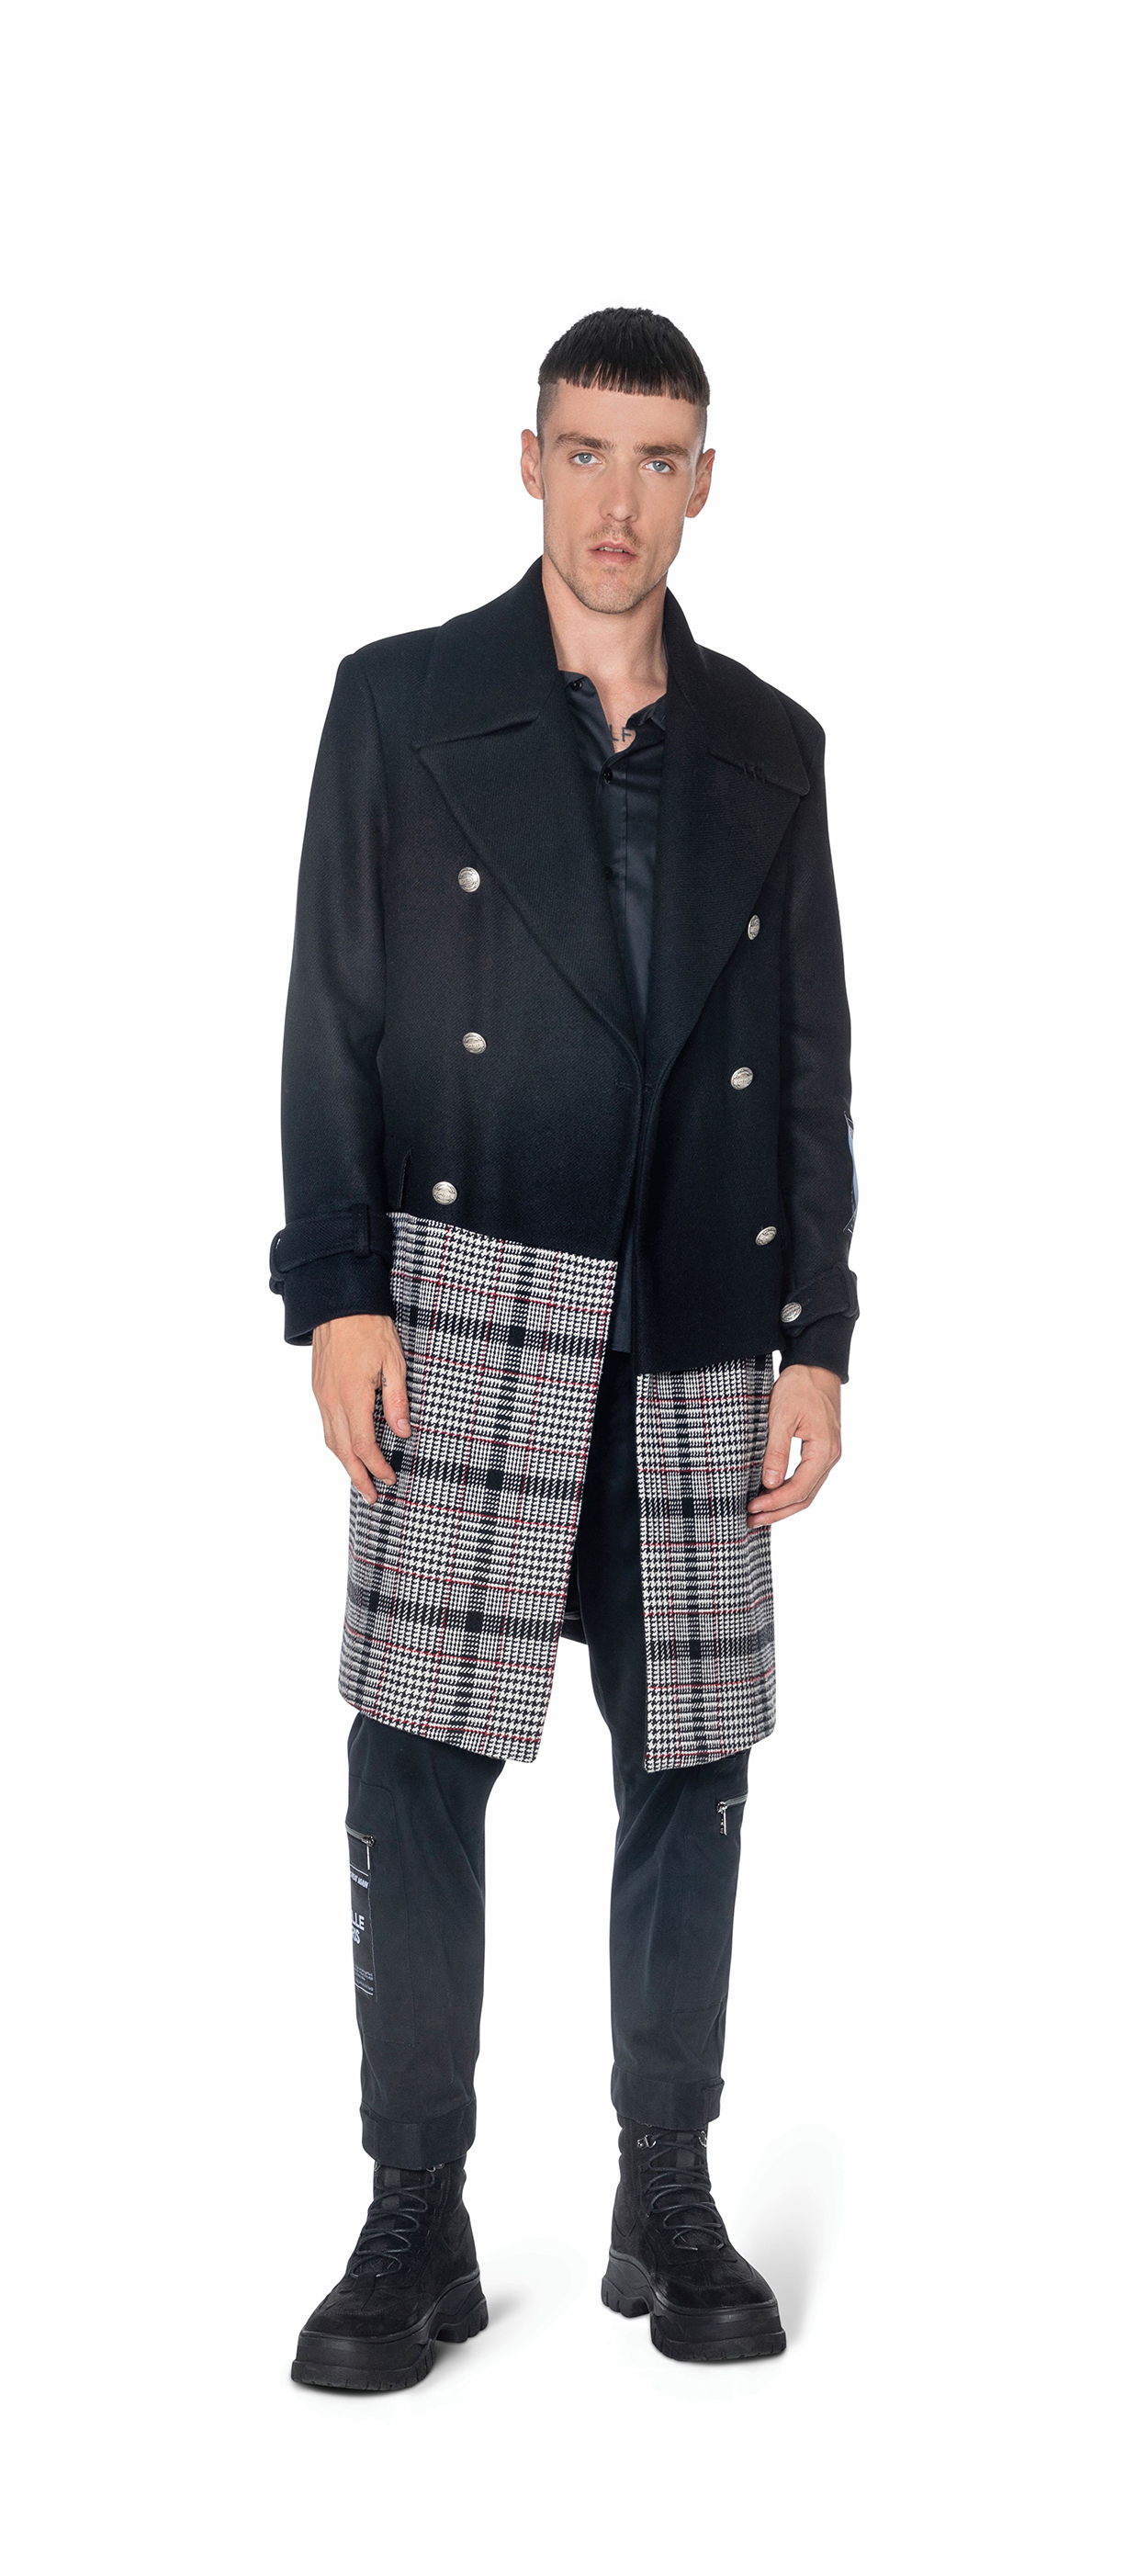 CAPPOTTO - GBU3120 - GAELLE PARIS